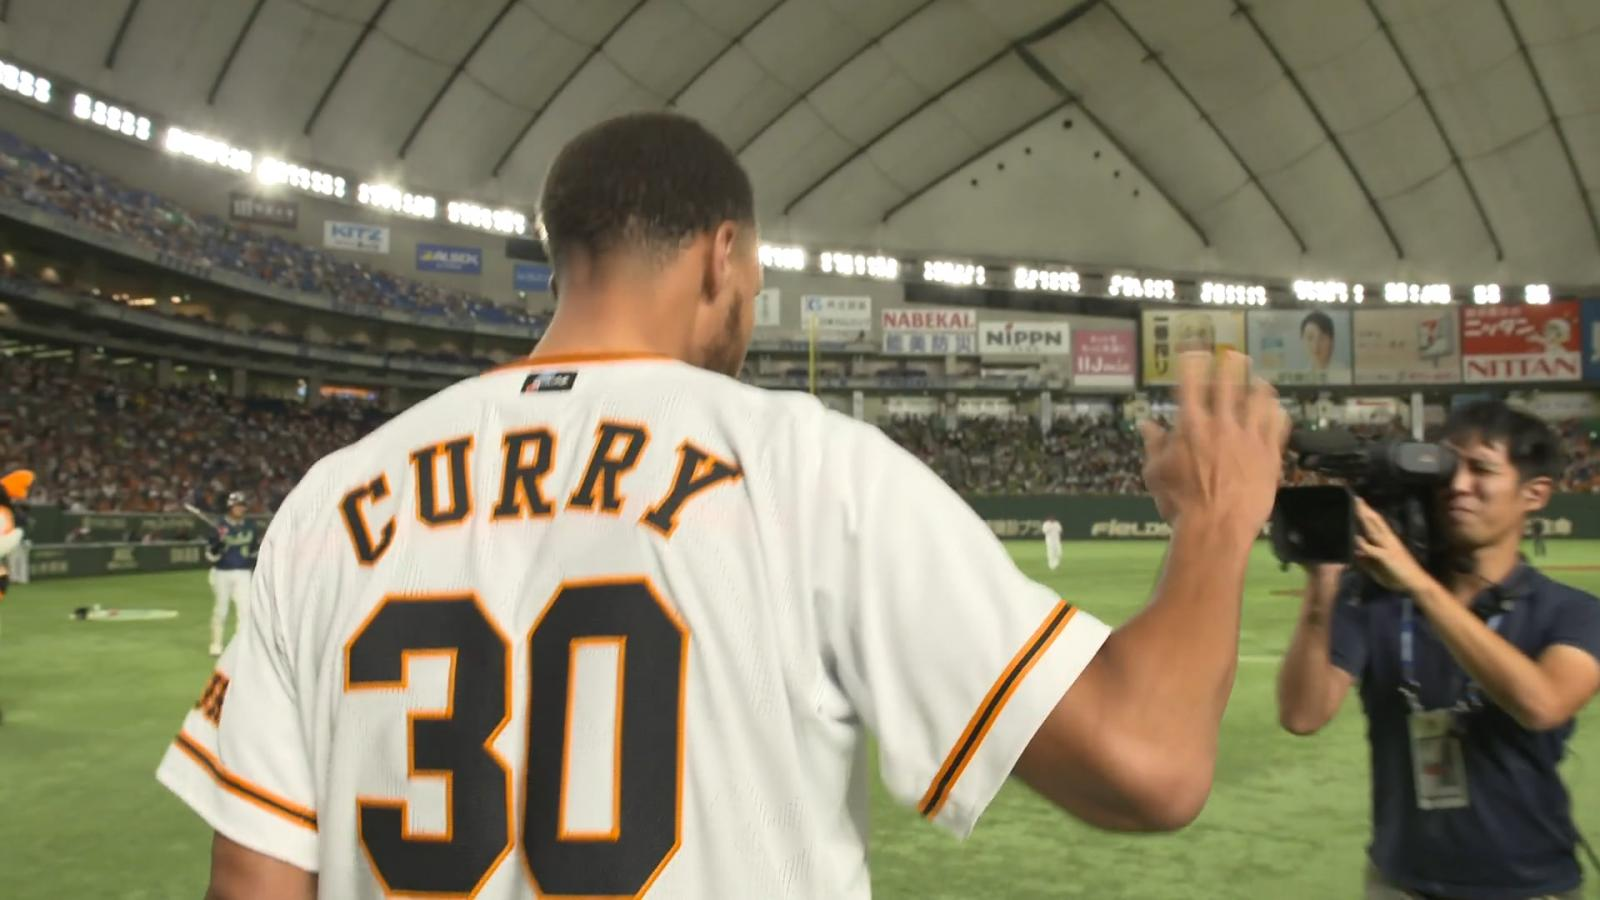 Stephen Curry looks comfortable on the mound, throwing out the ceremonial first pitch for the Yomiuri Giants and wrapping up the Tokyo stop of his international tour.